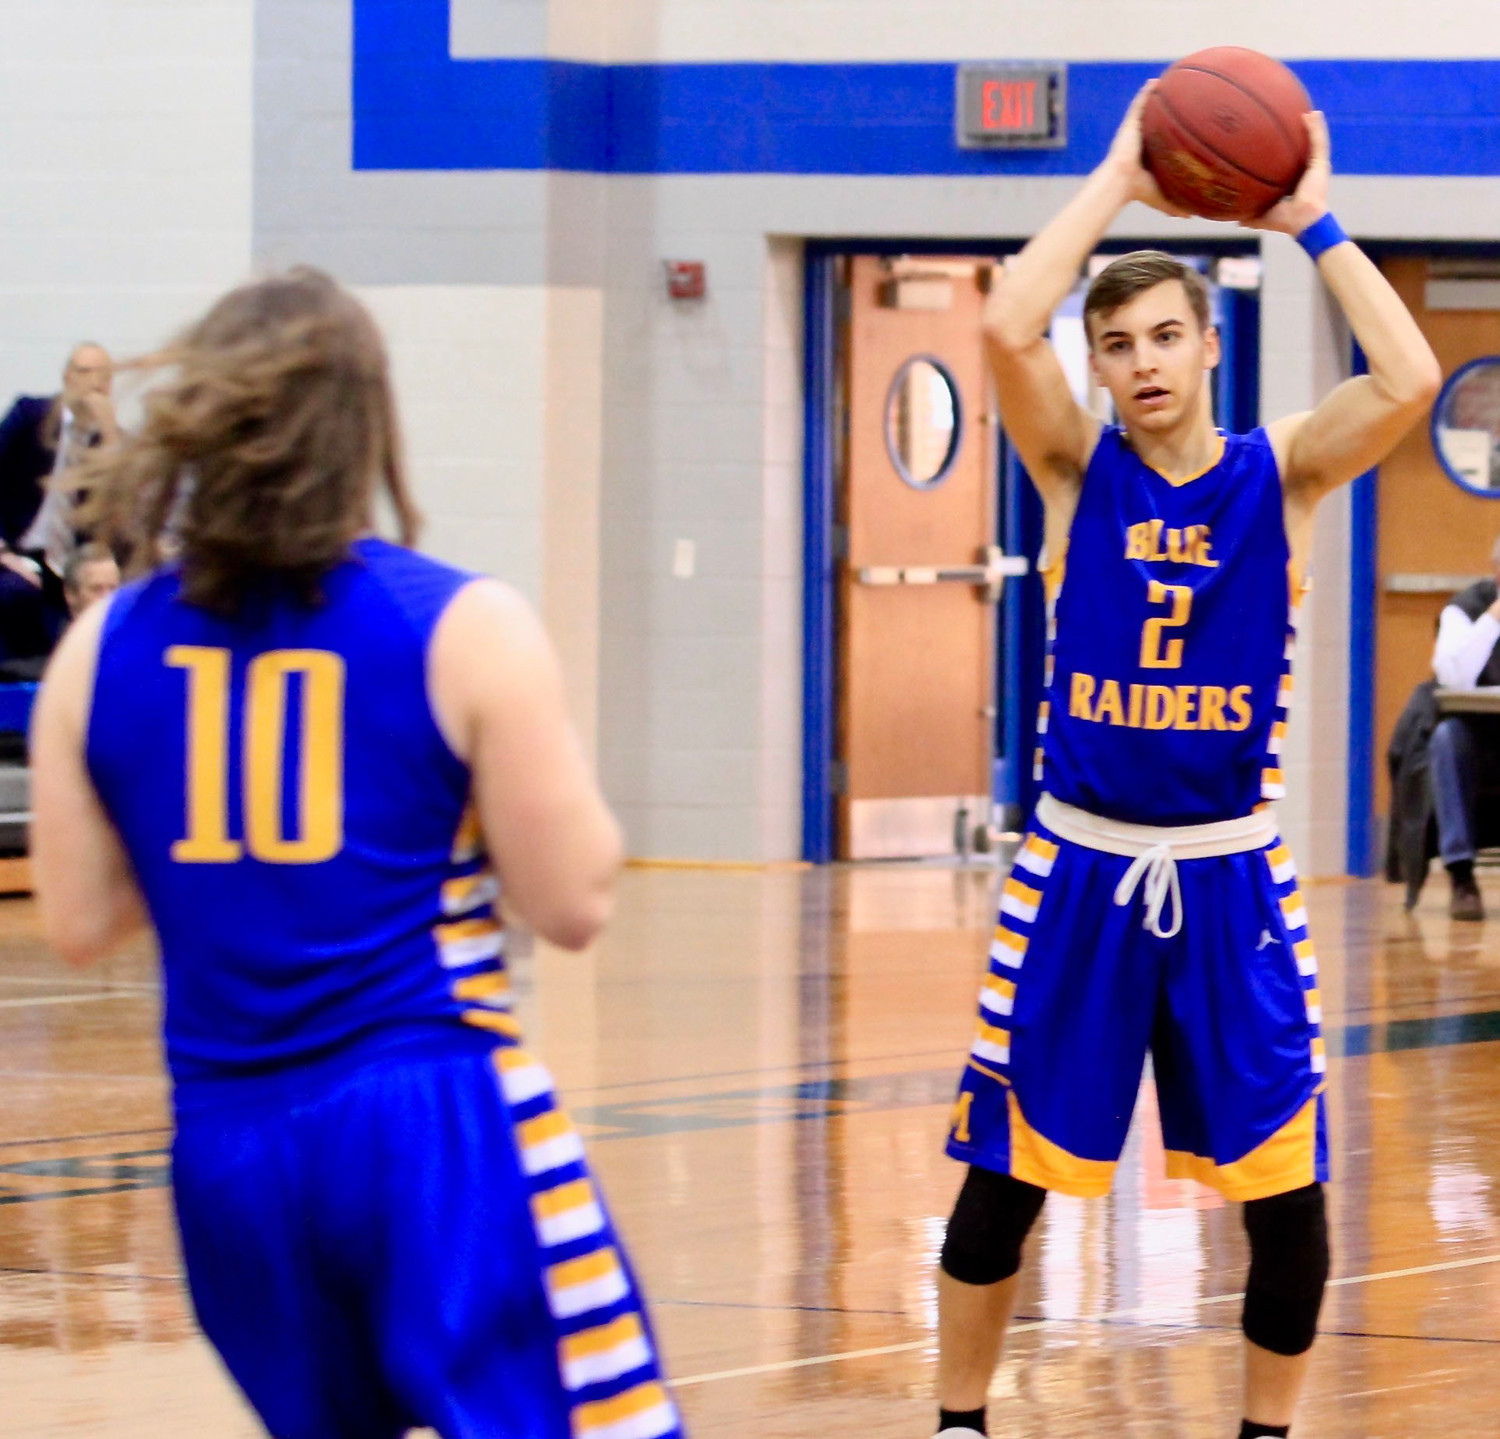 Kyle Truesdale looks toward Brady Fox to pass the ball during Middletown's 47-45 win vs. Overbrook in the second round of the 4A state playoffs Tuesday night at Garden Spot High School.